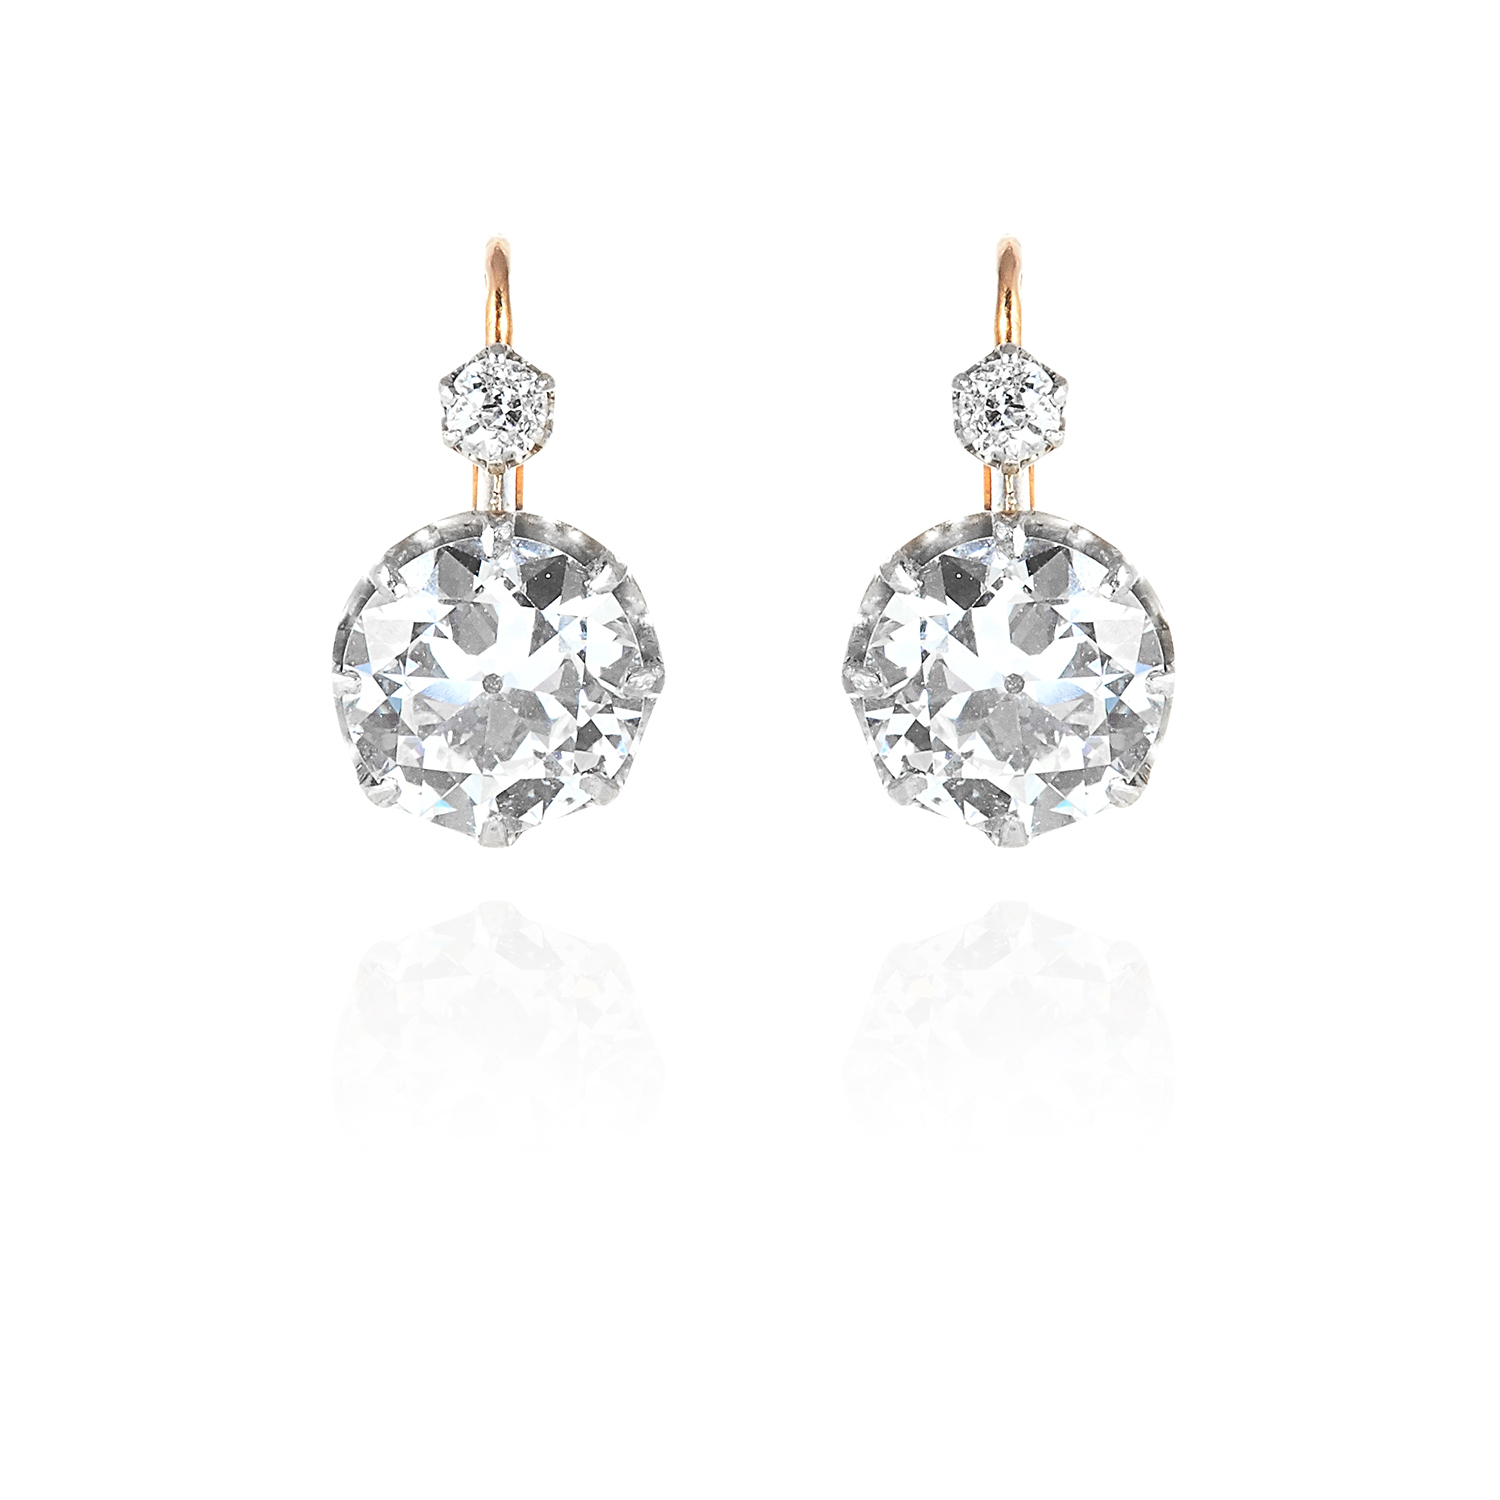 Los 38A - A PAIR OF ANTIQUE DIAMOND EARRINGS in 18ct yellow gold and silver, each set with an old round cut